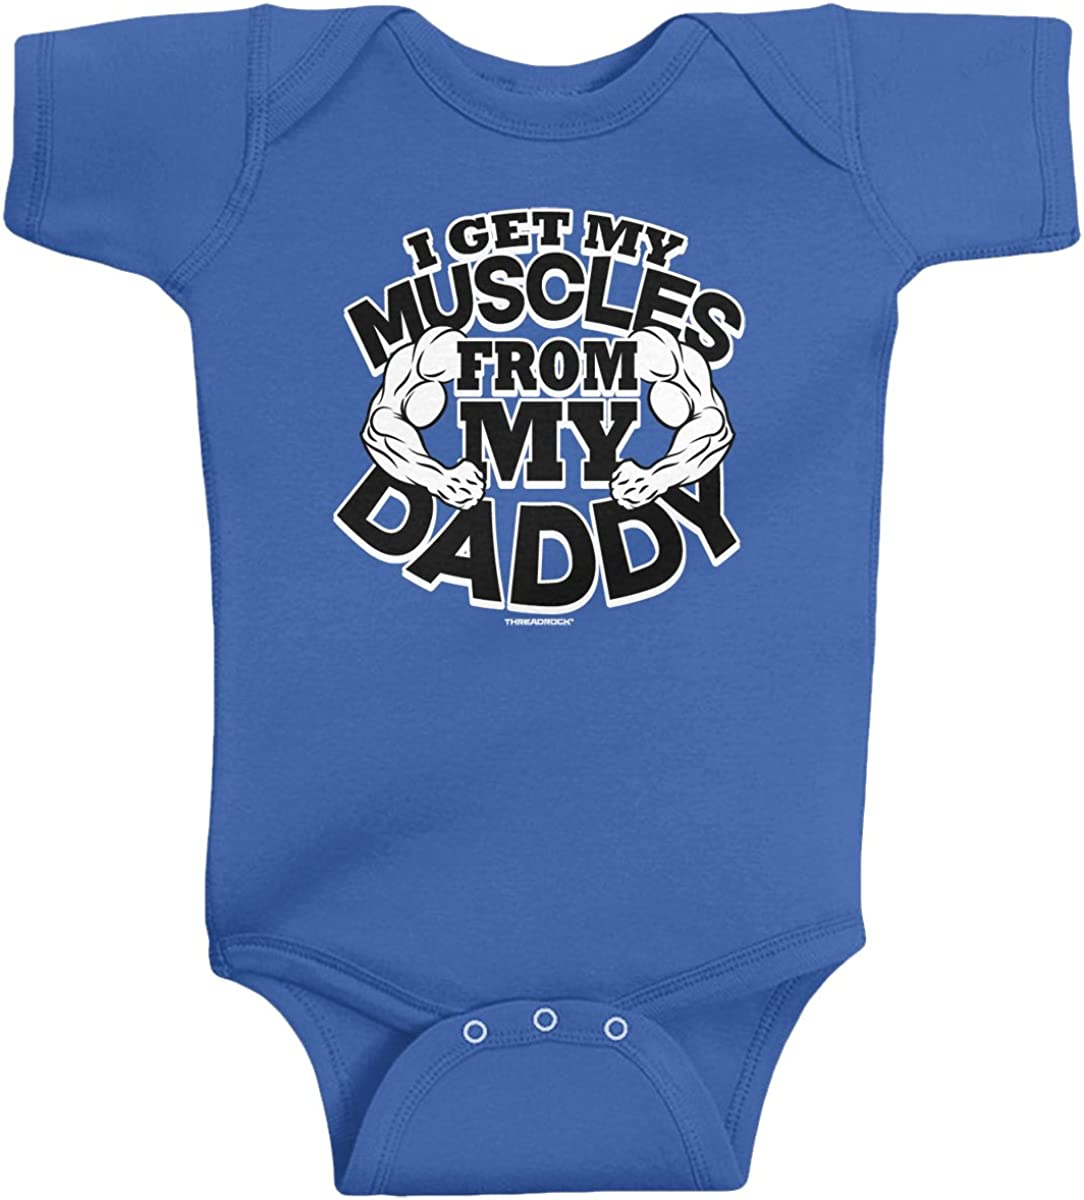 Threadrock Baby Boys' I Get My Muscles from Daddy Infant Bodysuit